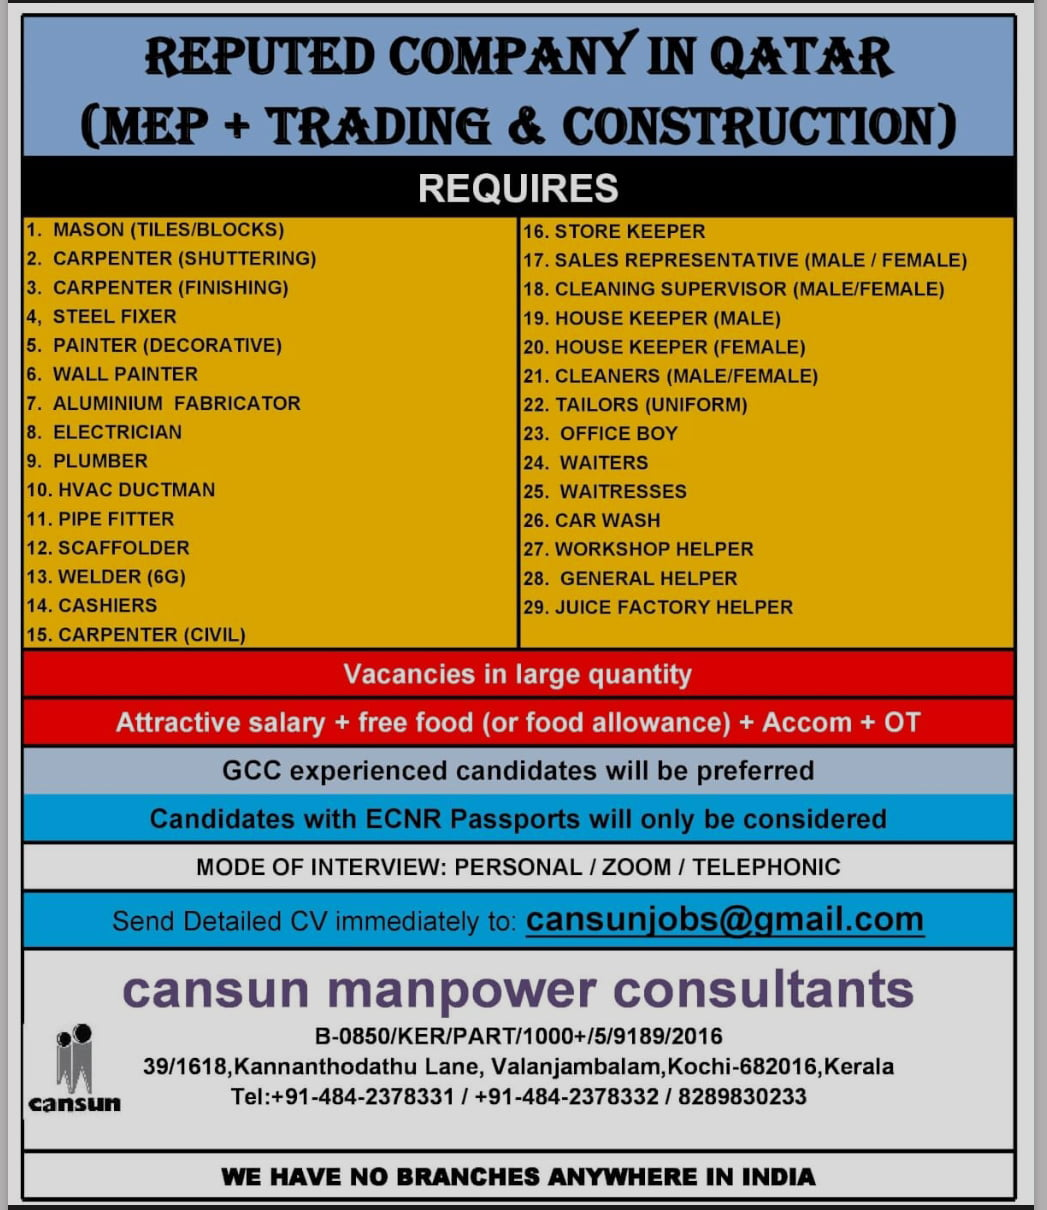 REPUTED COMPANY IN QATAR (MEP + TRADING & CONSTRUCTION)